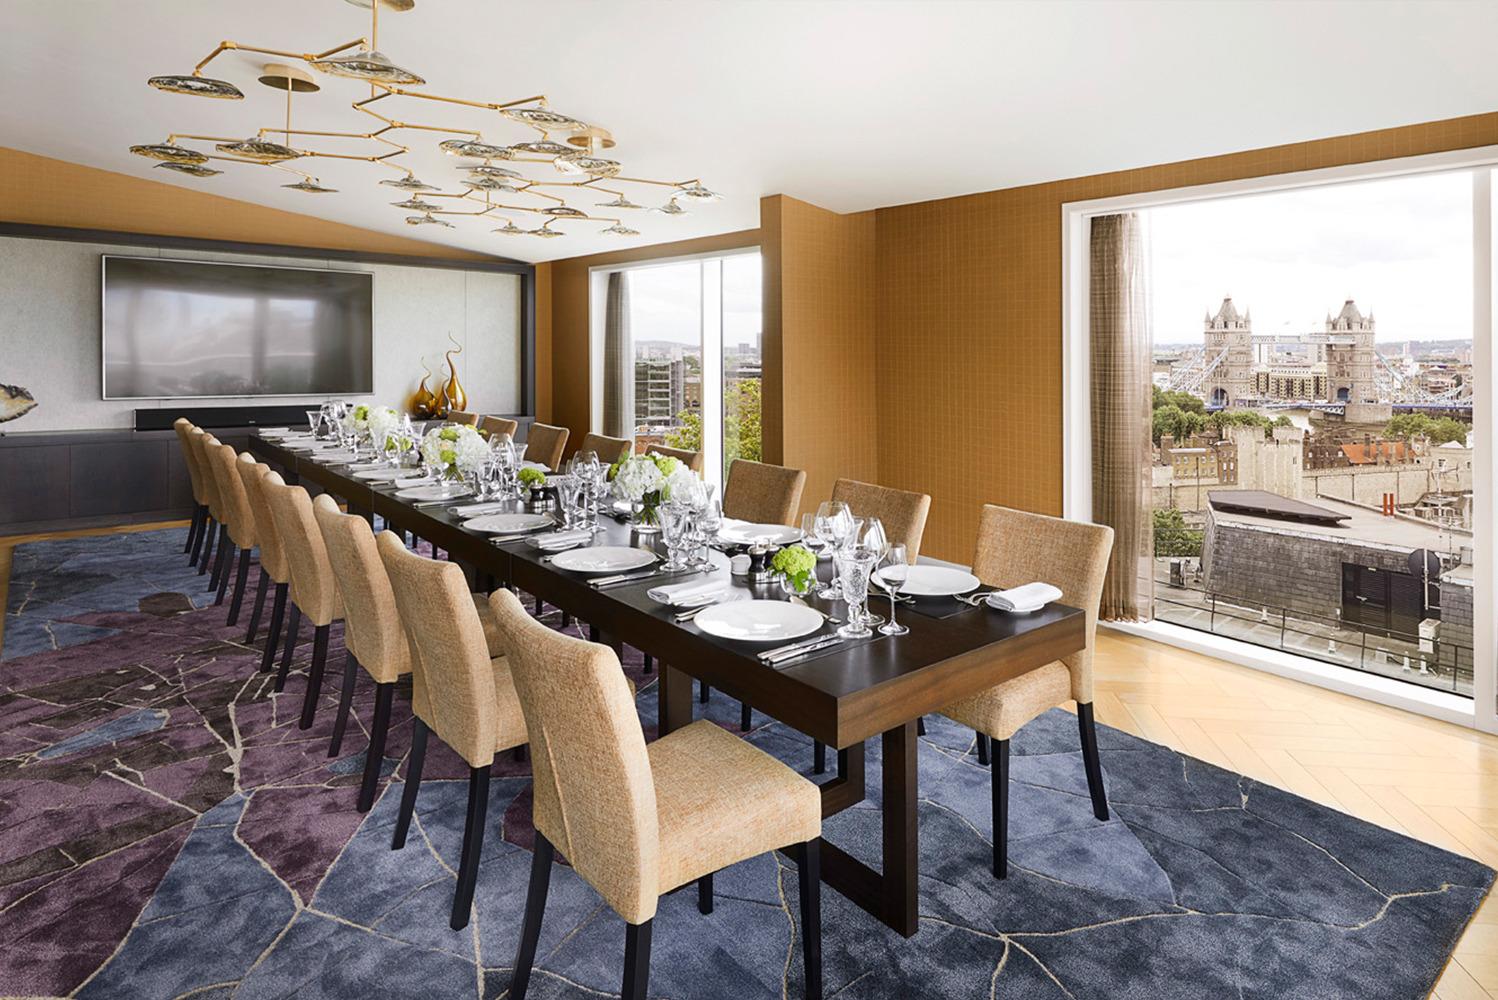 The 6,000 square foot residential-style Thames Penthouse has floor-to-ceiling windows and uninterrupted views of the Tower of London and Tower Bridge.